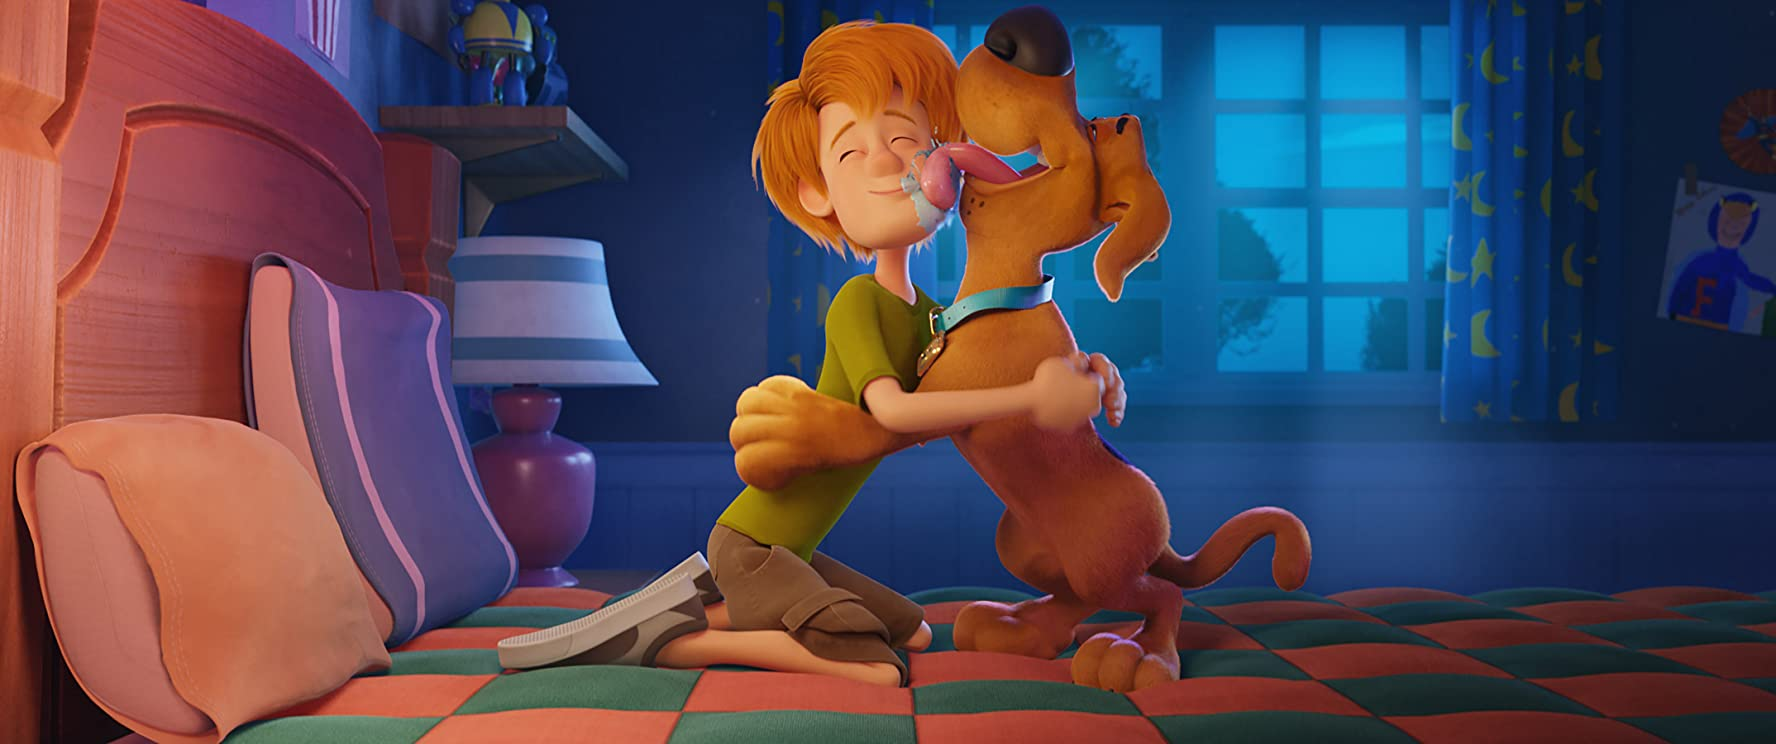 Frank Welker and Iain Armitage in Scoob! (2020)